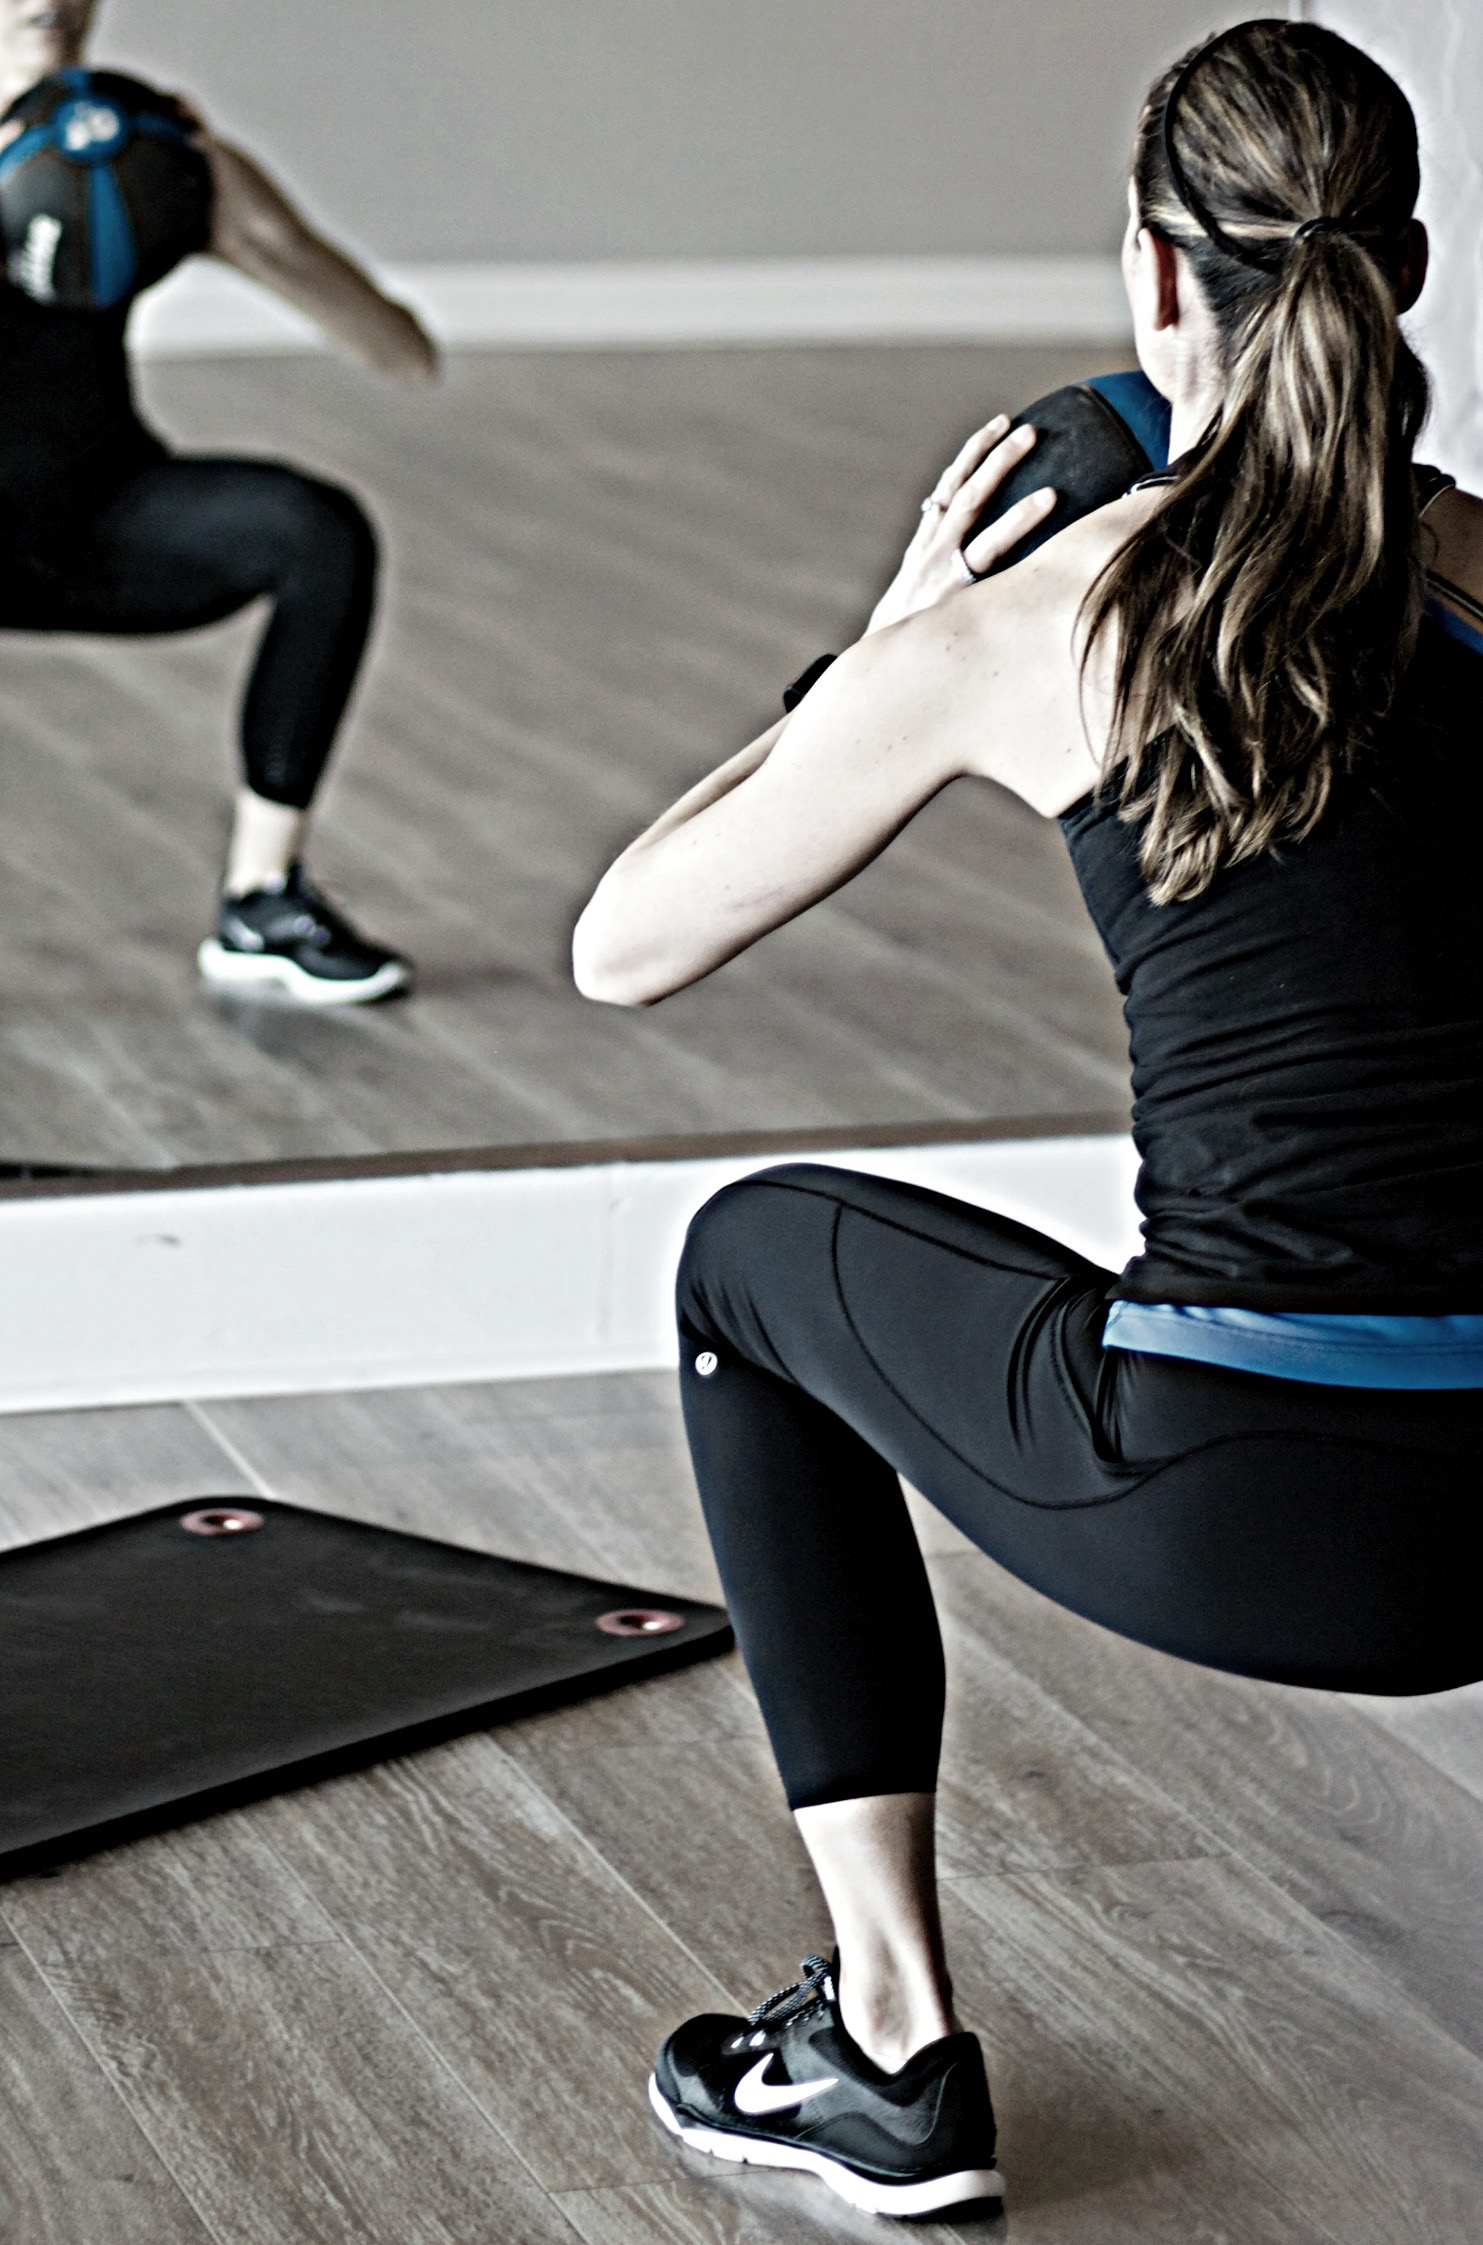 For more leg toning workouts - CLICK HERE